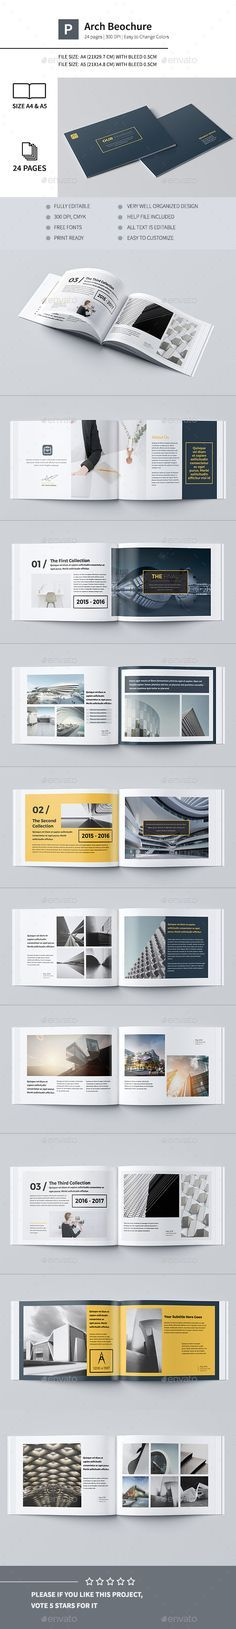 """Our Portfolio Architecture 24 Pages A4 & A5 — InDesign INDD <a class=""""pintag"""" href=""""/explore/blue/"""" title=""""#blue explore Pinterest"""">#blue</a> <a class=""""pintag searchlink"""" data-query=""""%23a5"""" data-type=""""hashtag"""" href=""""/search/?q=%23a5&rs=hashtag"""" rel=""""nofollow"""" title=""""#a5 search Pinterest"""">#a5</a> • Available here → <a href=""""https://graphicriver.net/item/our-portfolio-architecture-24-pages-a4-a5/16254091?ref=pxcr"""" rel=""""nofollow"""" target=""""_blank"""">graphicriver.net/...</a>"""